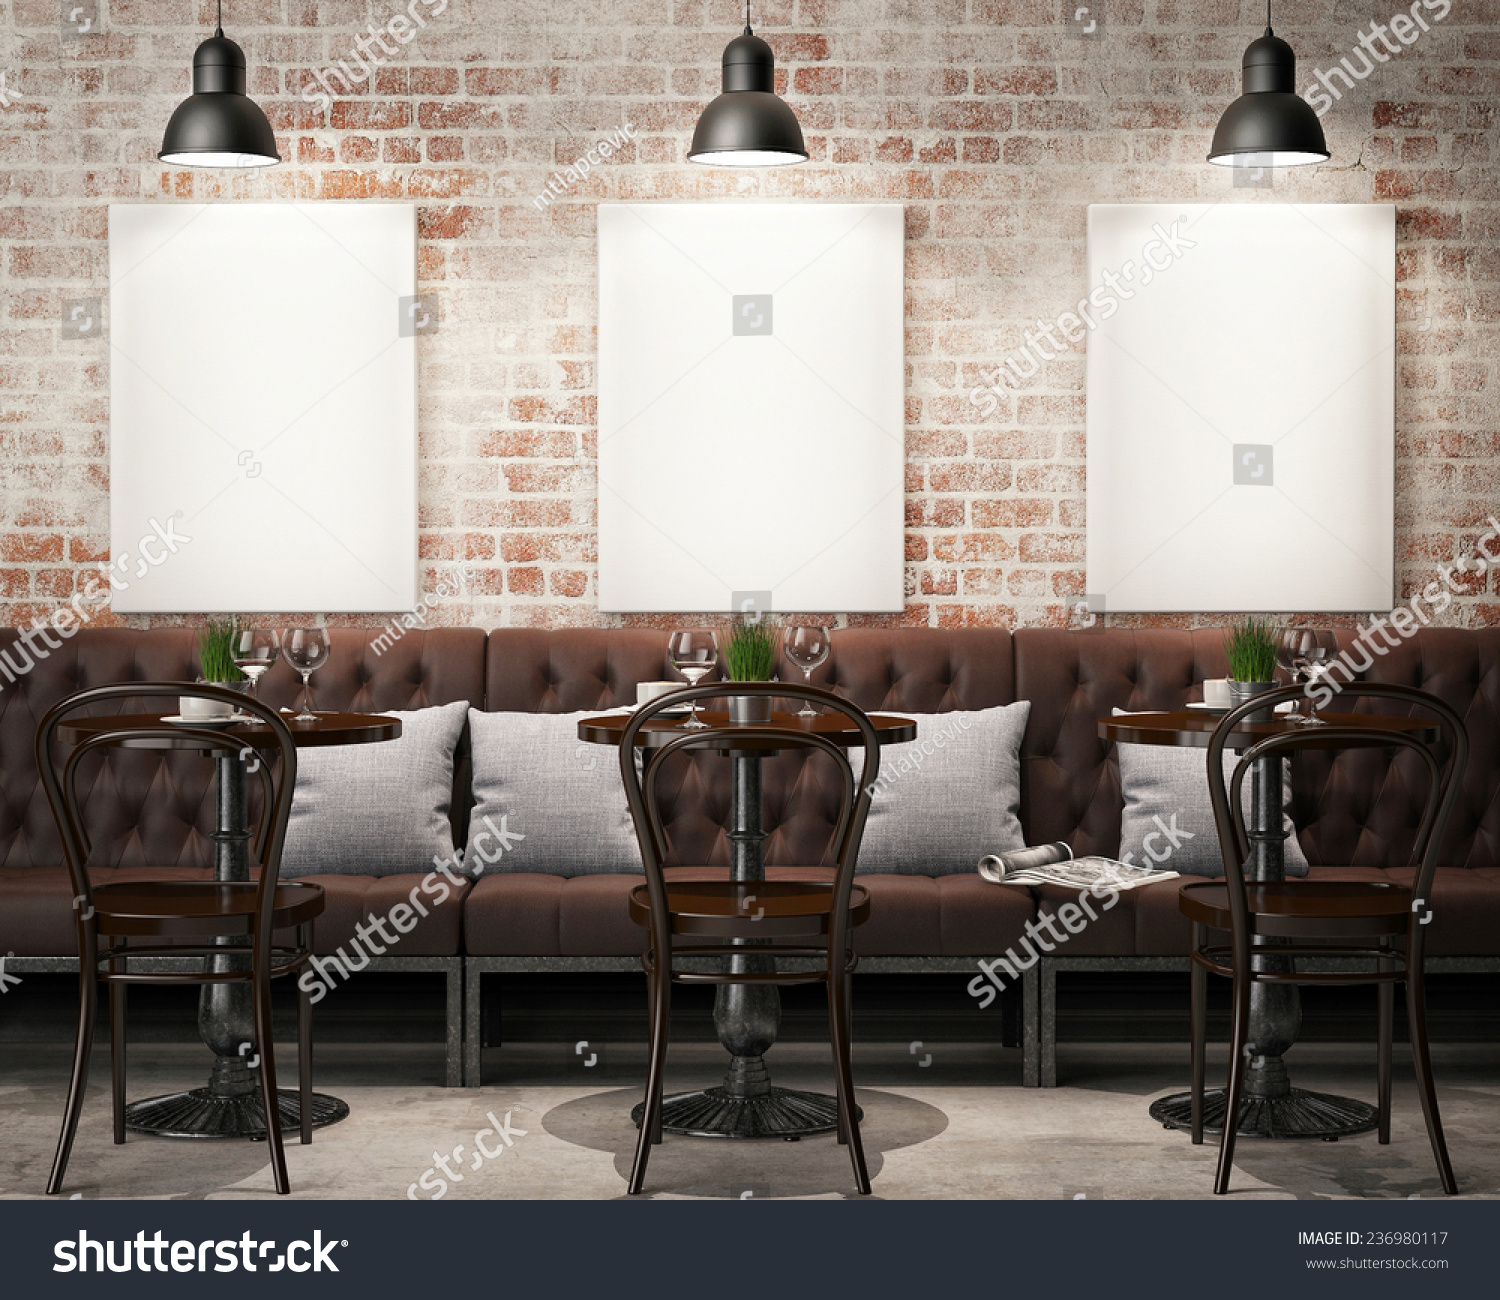 Mock posters retro hipster cafe restaurant stock